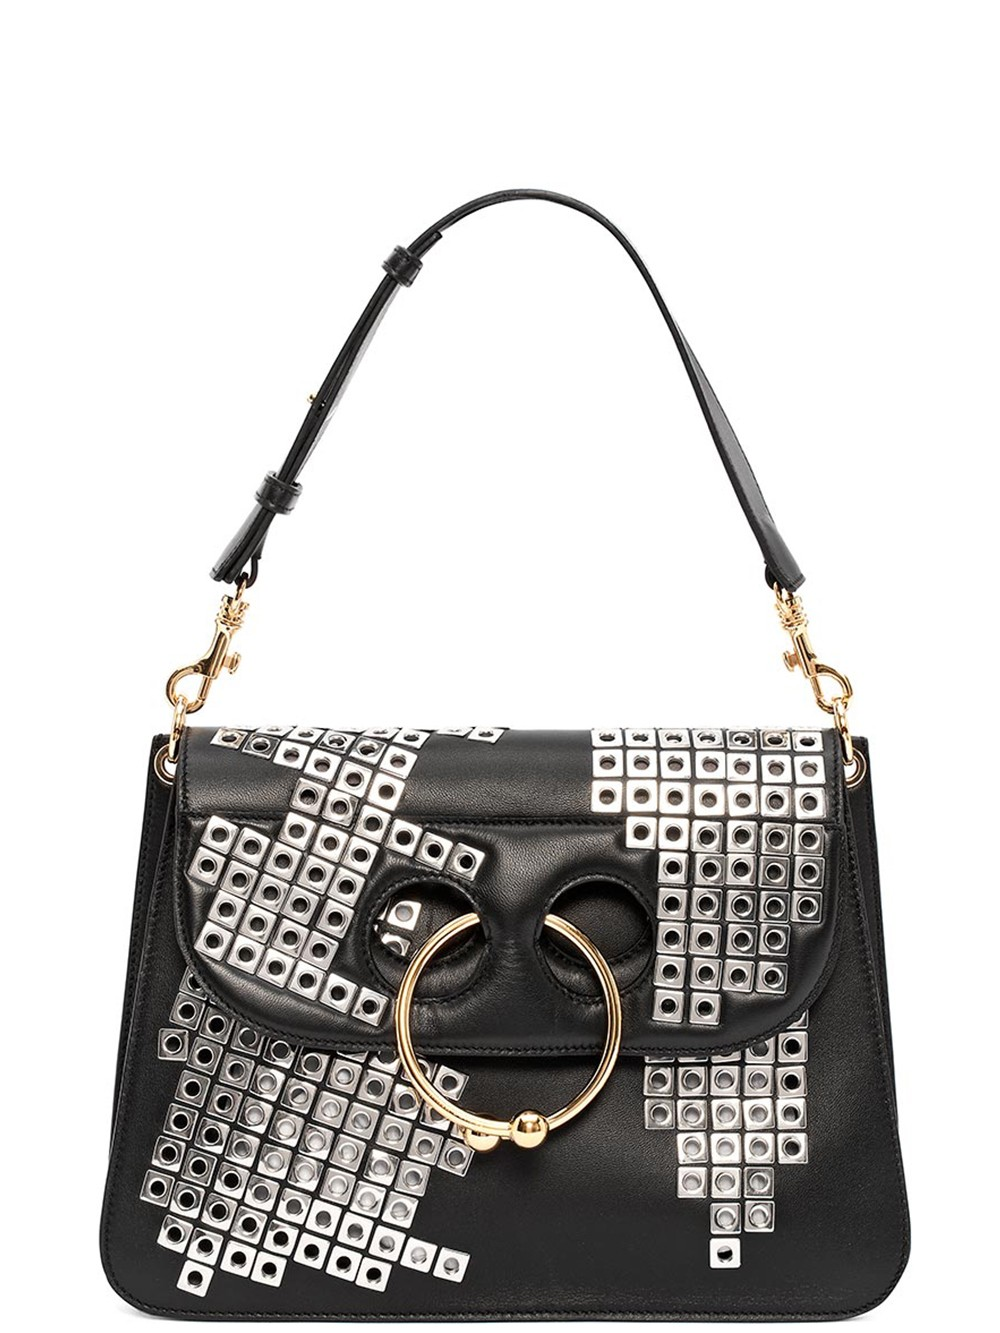 J W ANDERSON - STUD PIERCE BAG